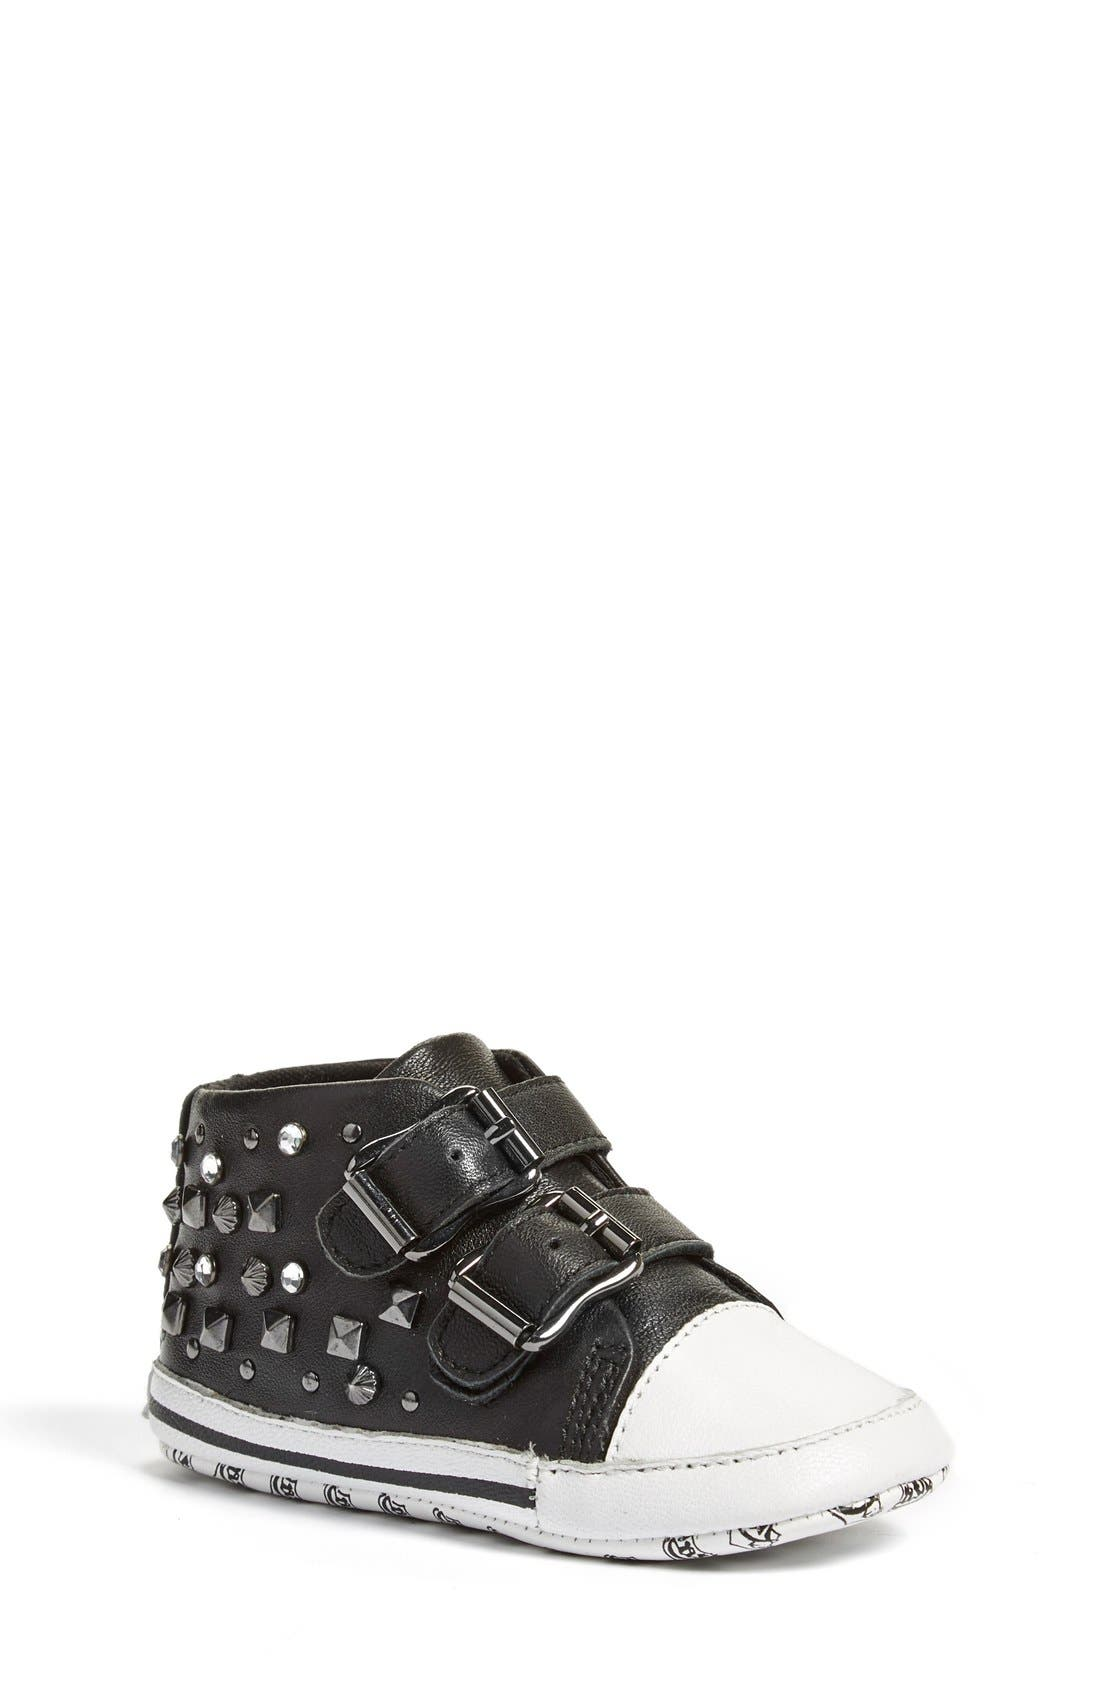 Ash 'Viper' High Top Crib Shoe (Baby)